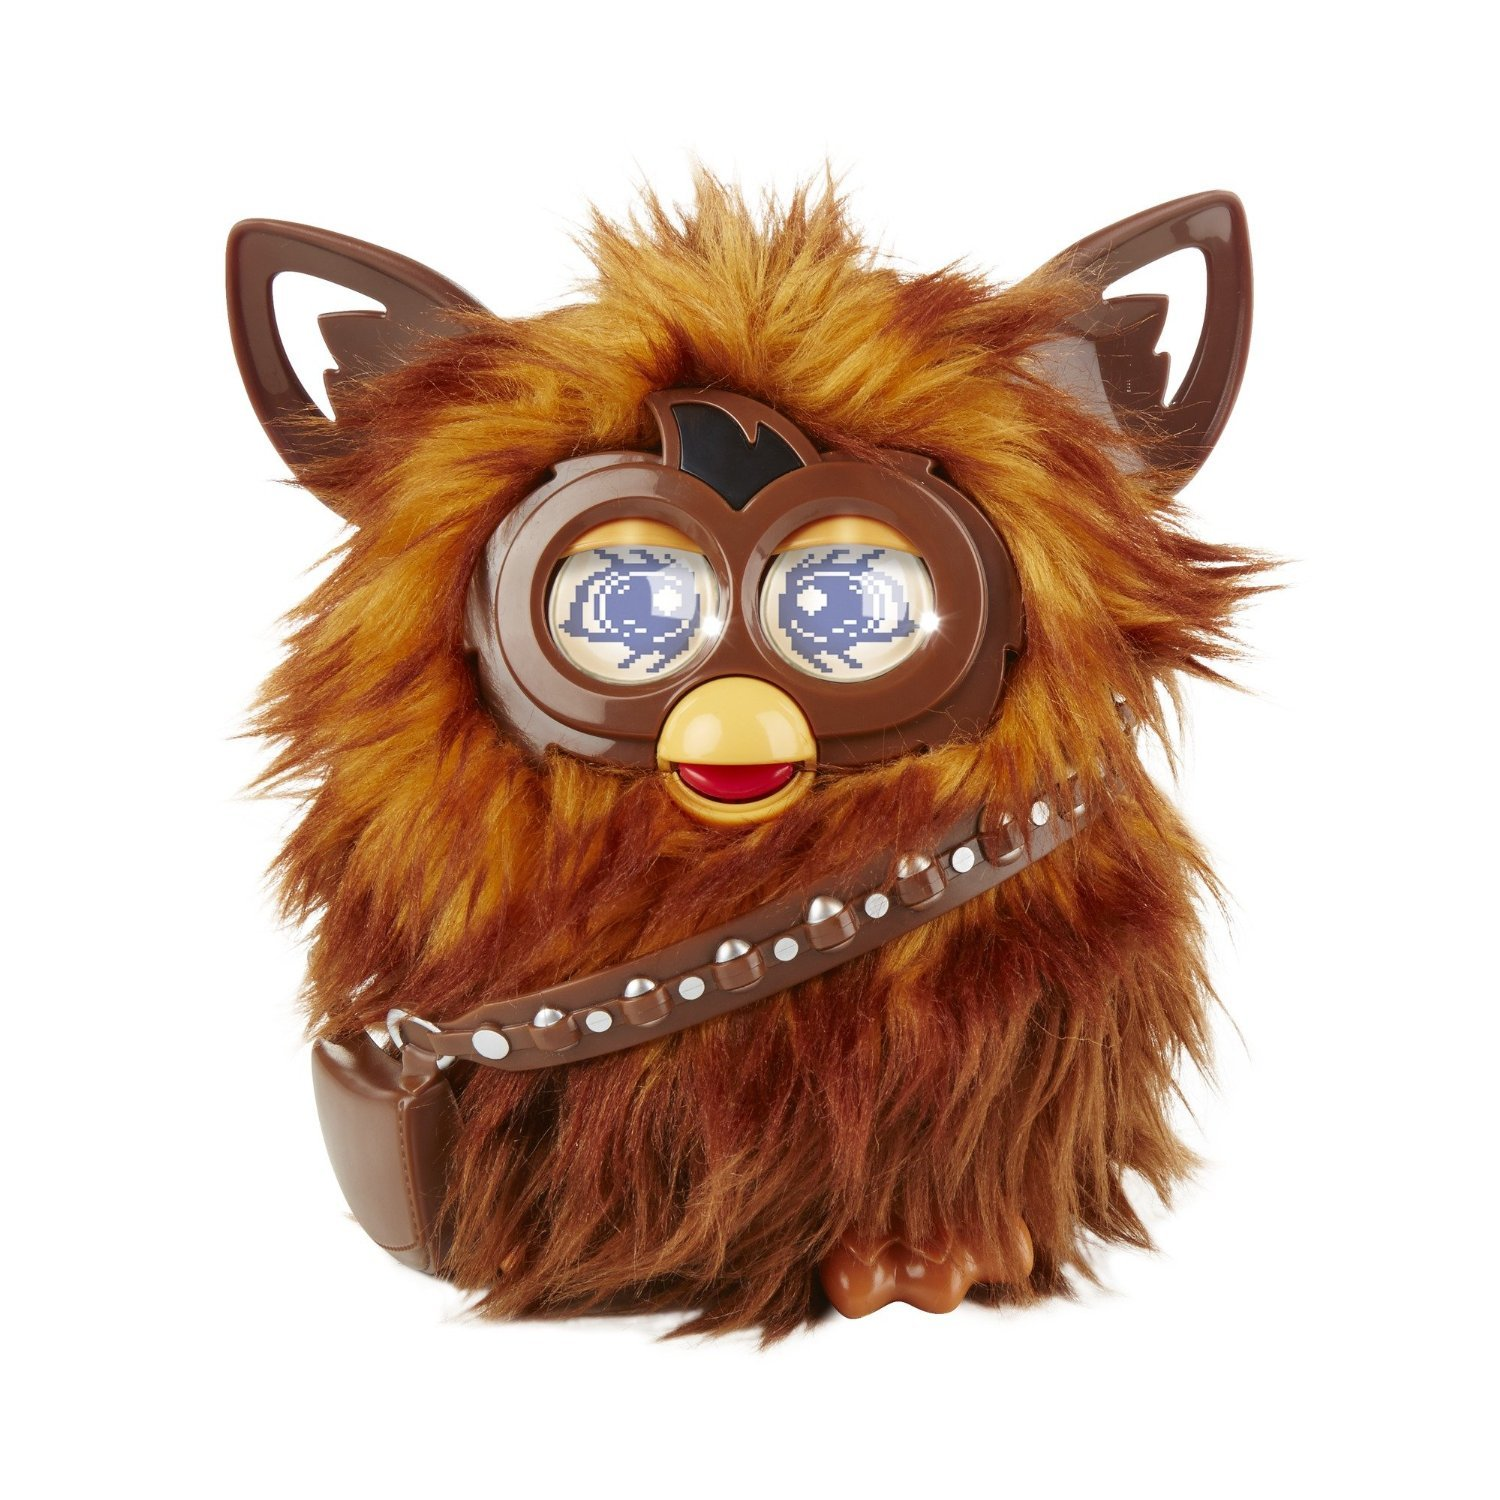 Image 0 of Star Wars Furby Furbacca Interactive Creature, Hasbro, 6+